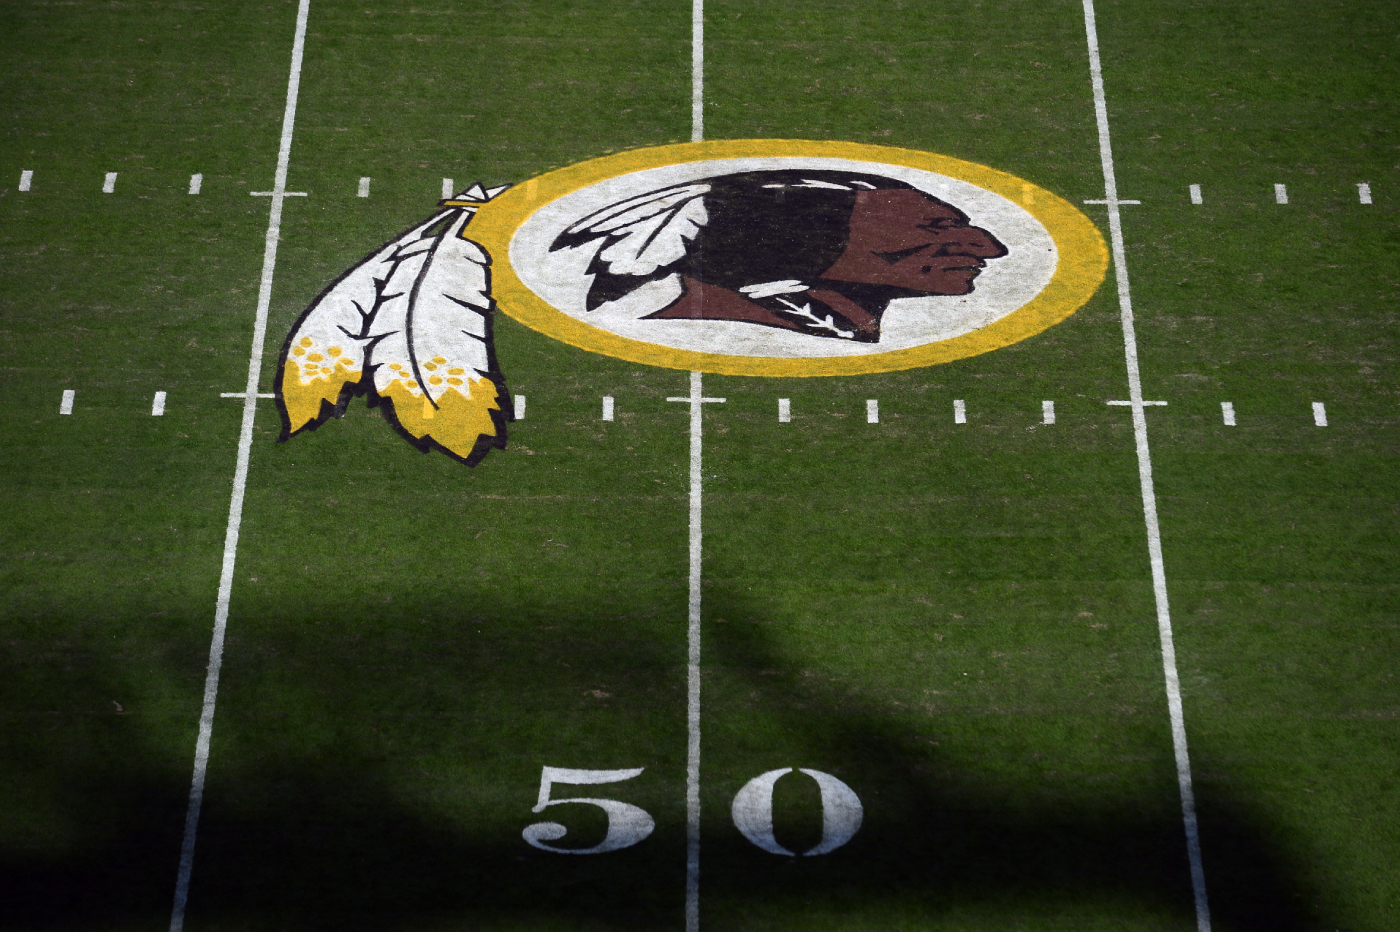 The Washington Redskins are going to change their controversial team name. They, however, could be running out of options for a new one.